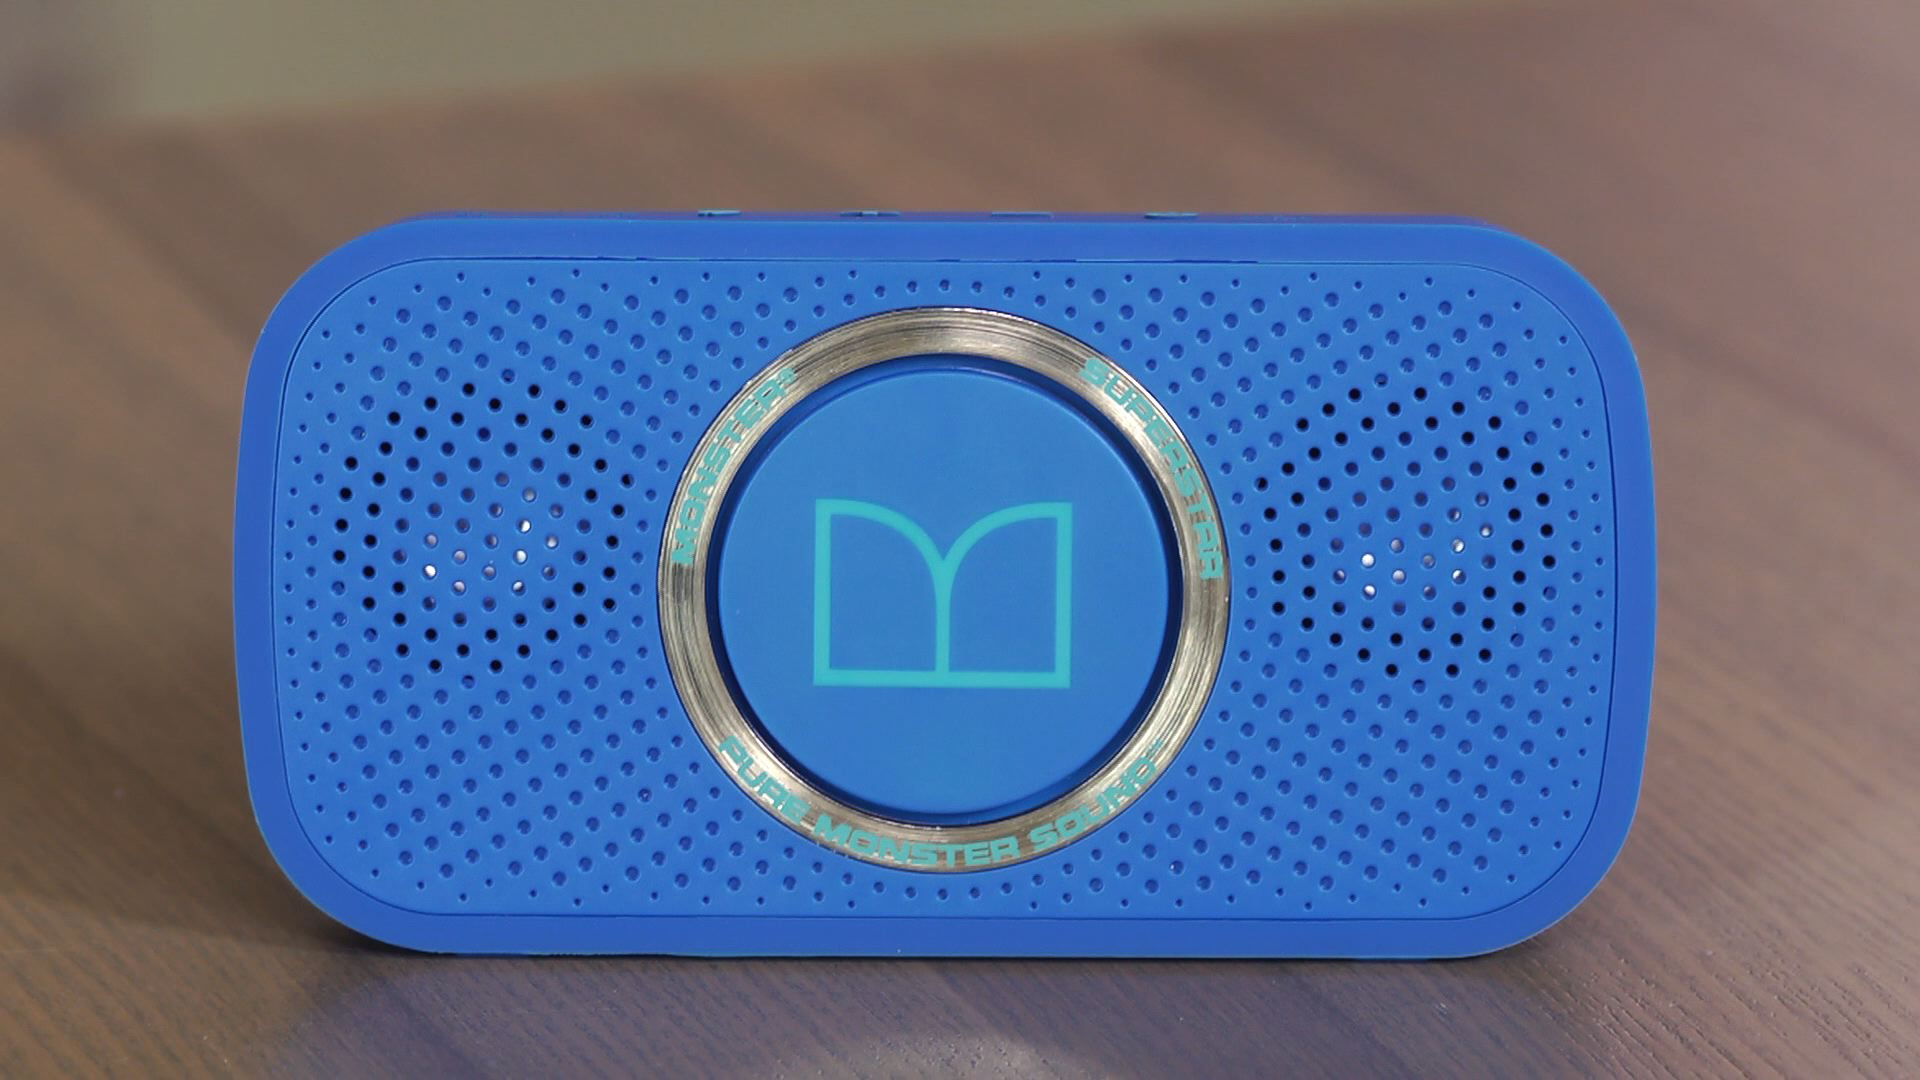 Video: Monster Superstar: Mini Bluetooth speaker with audiophile aspirations